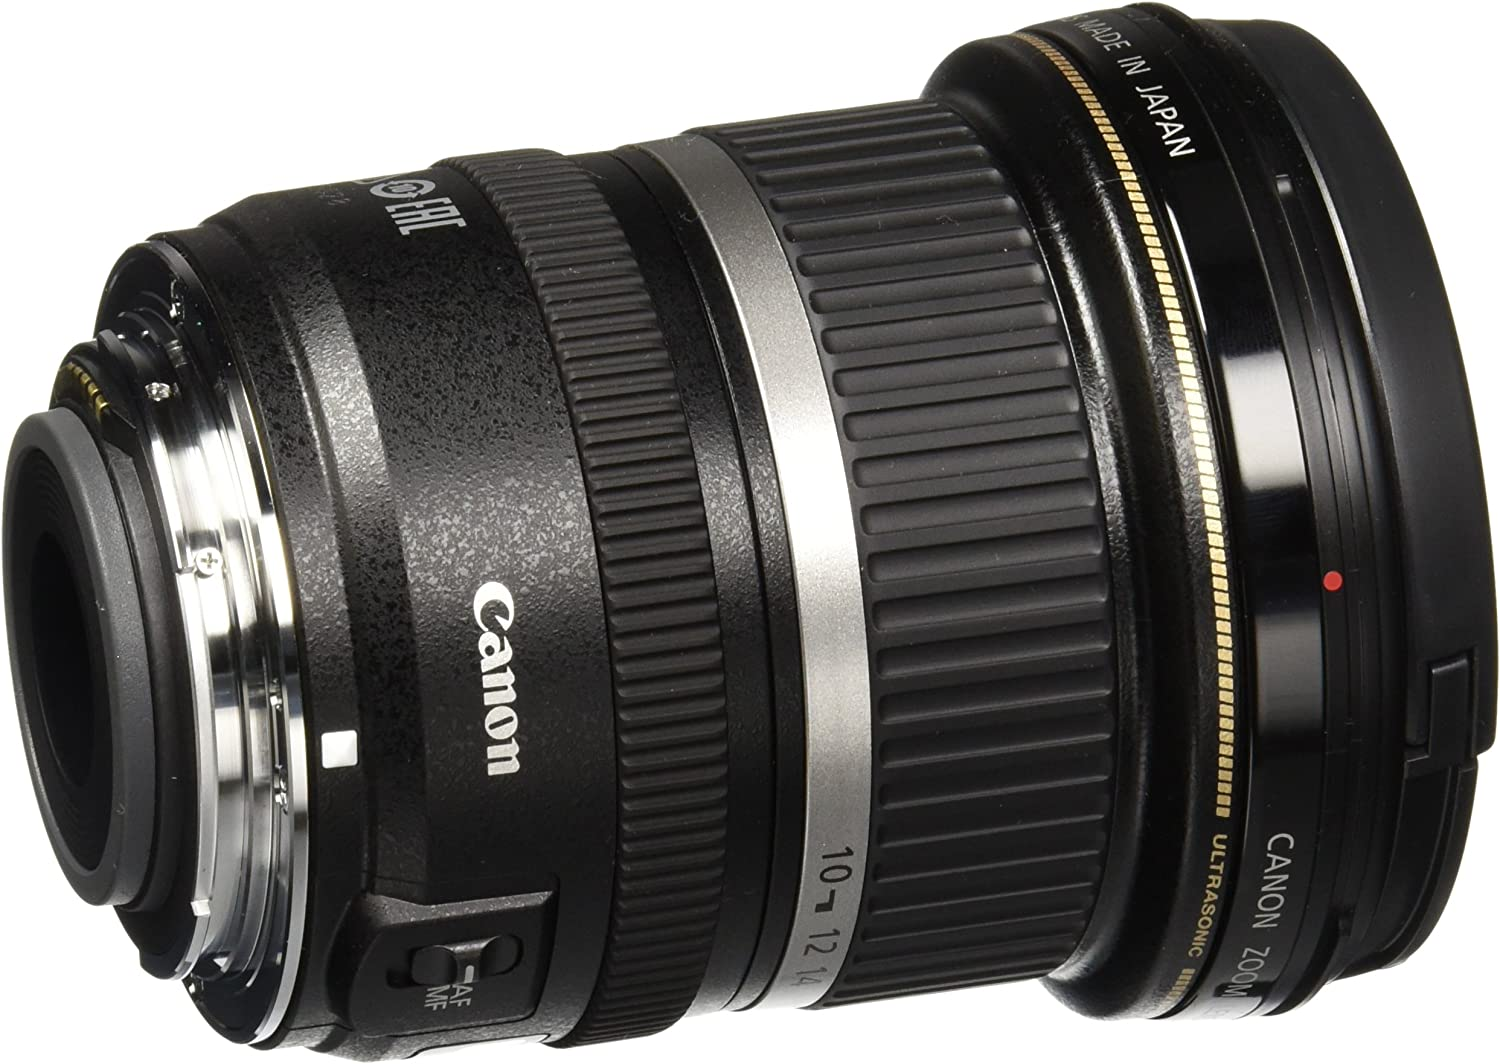 Canon EF-S 10-22 mm f//3.5-4.5 USM Lens Black